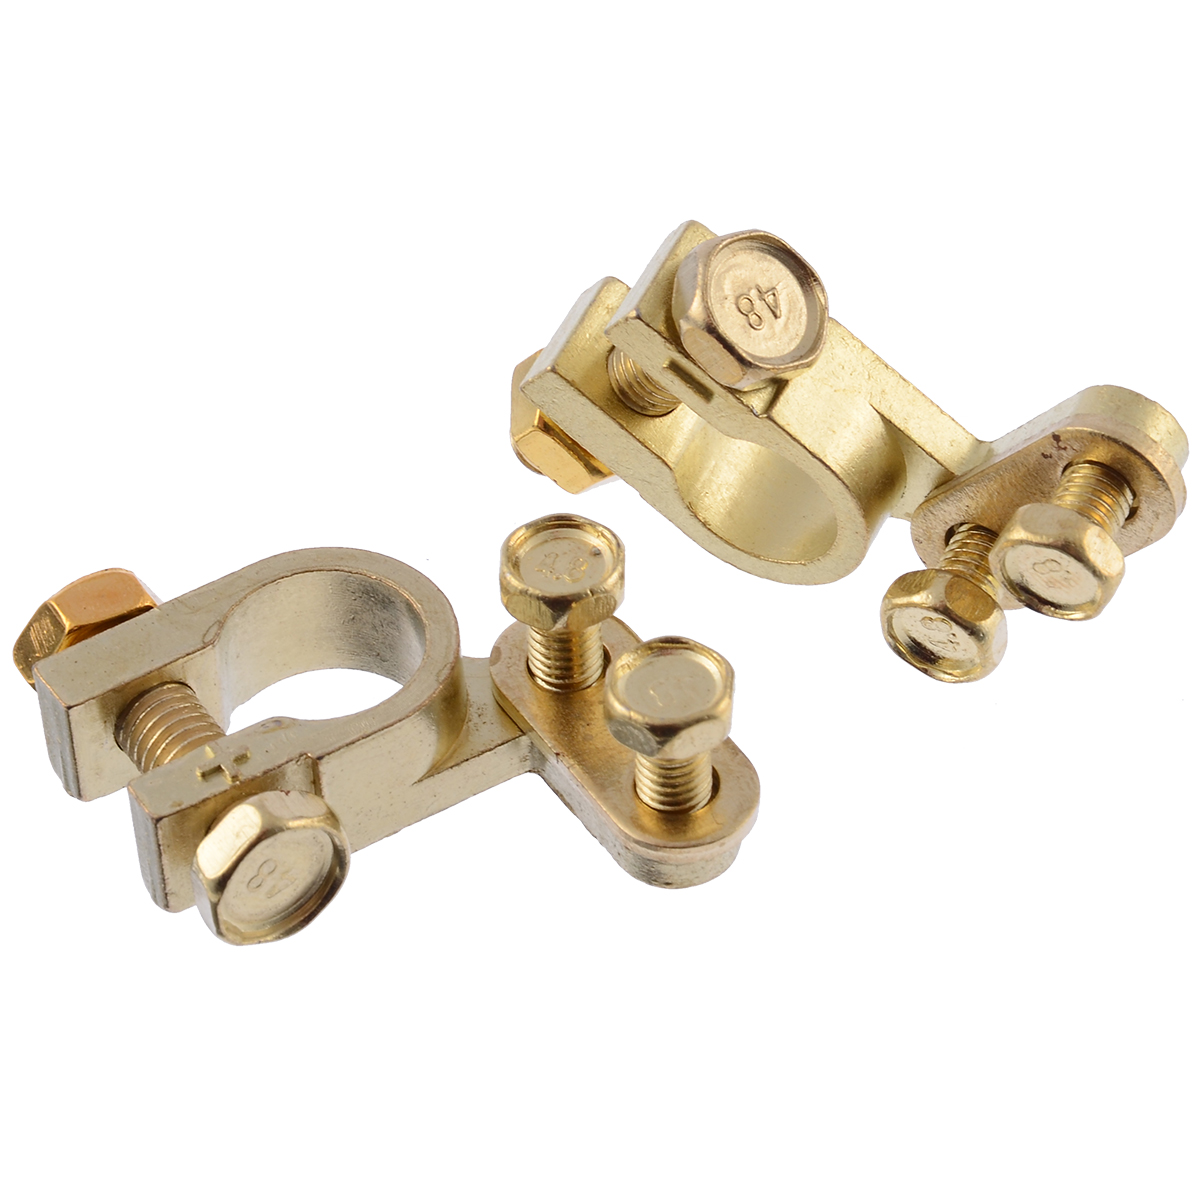 2Pcs Car Battery Terminals Clamps Pair Screw Connection Positive Negative Brass Cables Connectors Accessories in Jump Leads from Automobiles Motorcycles